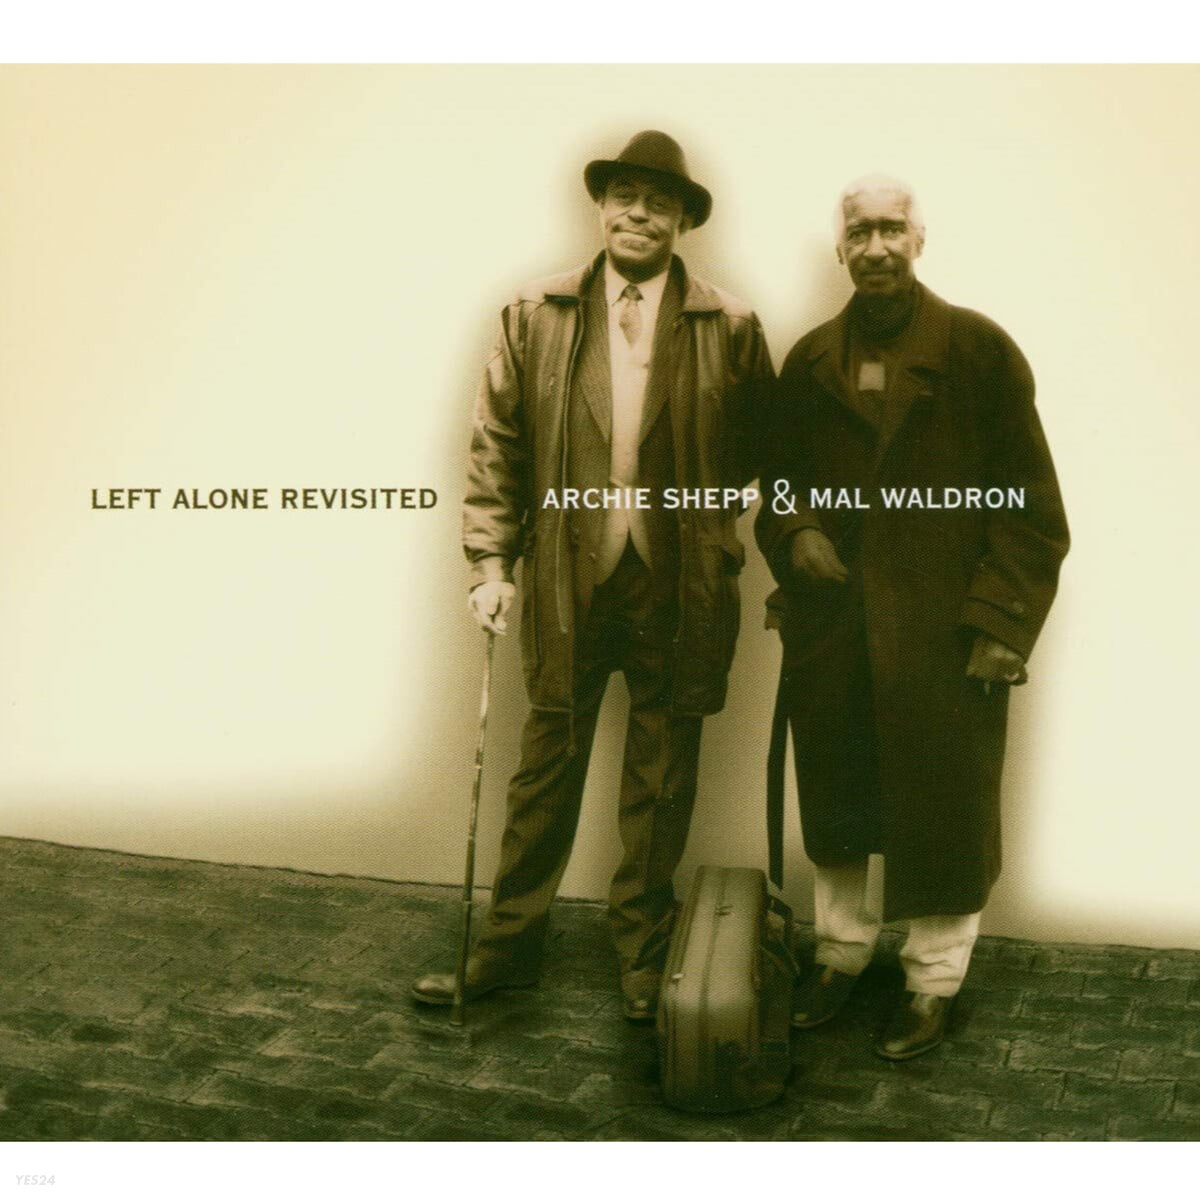 Archie Shepp / Mal Waldron (아치 셰프 / 말 왈드론) - Left Alone Revisited